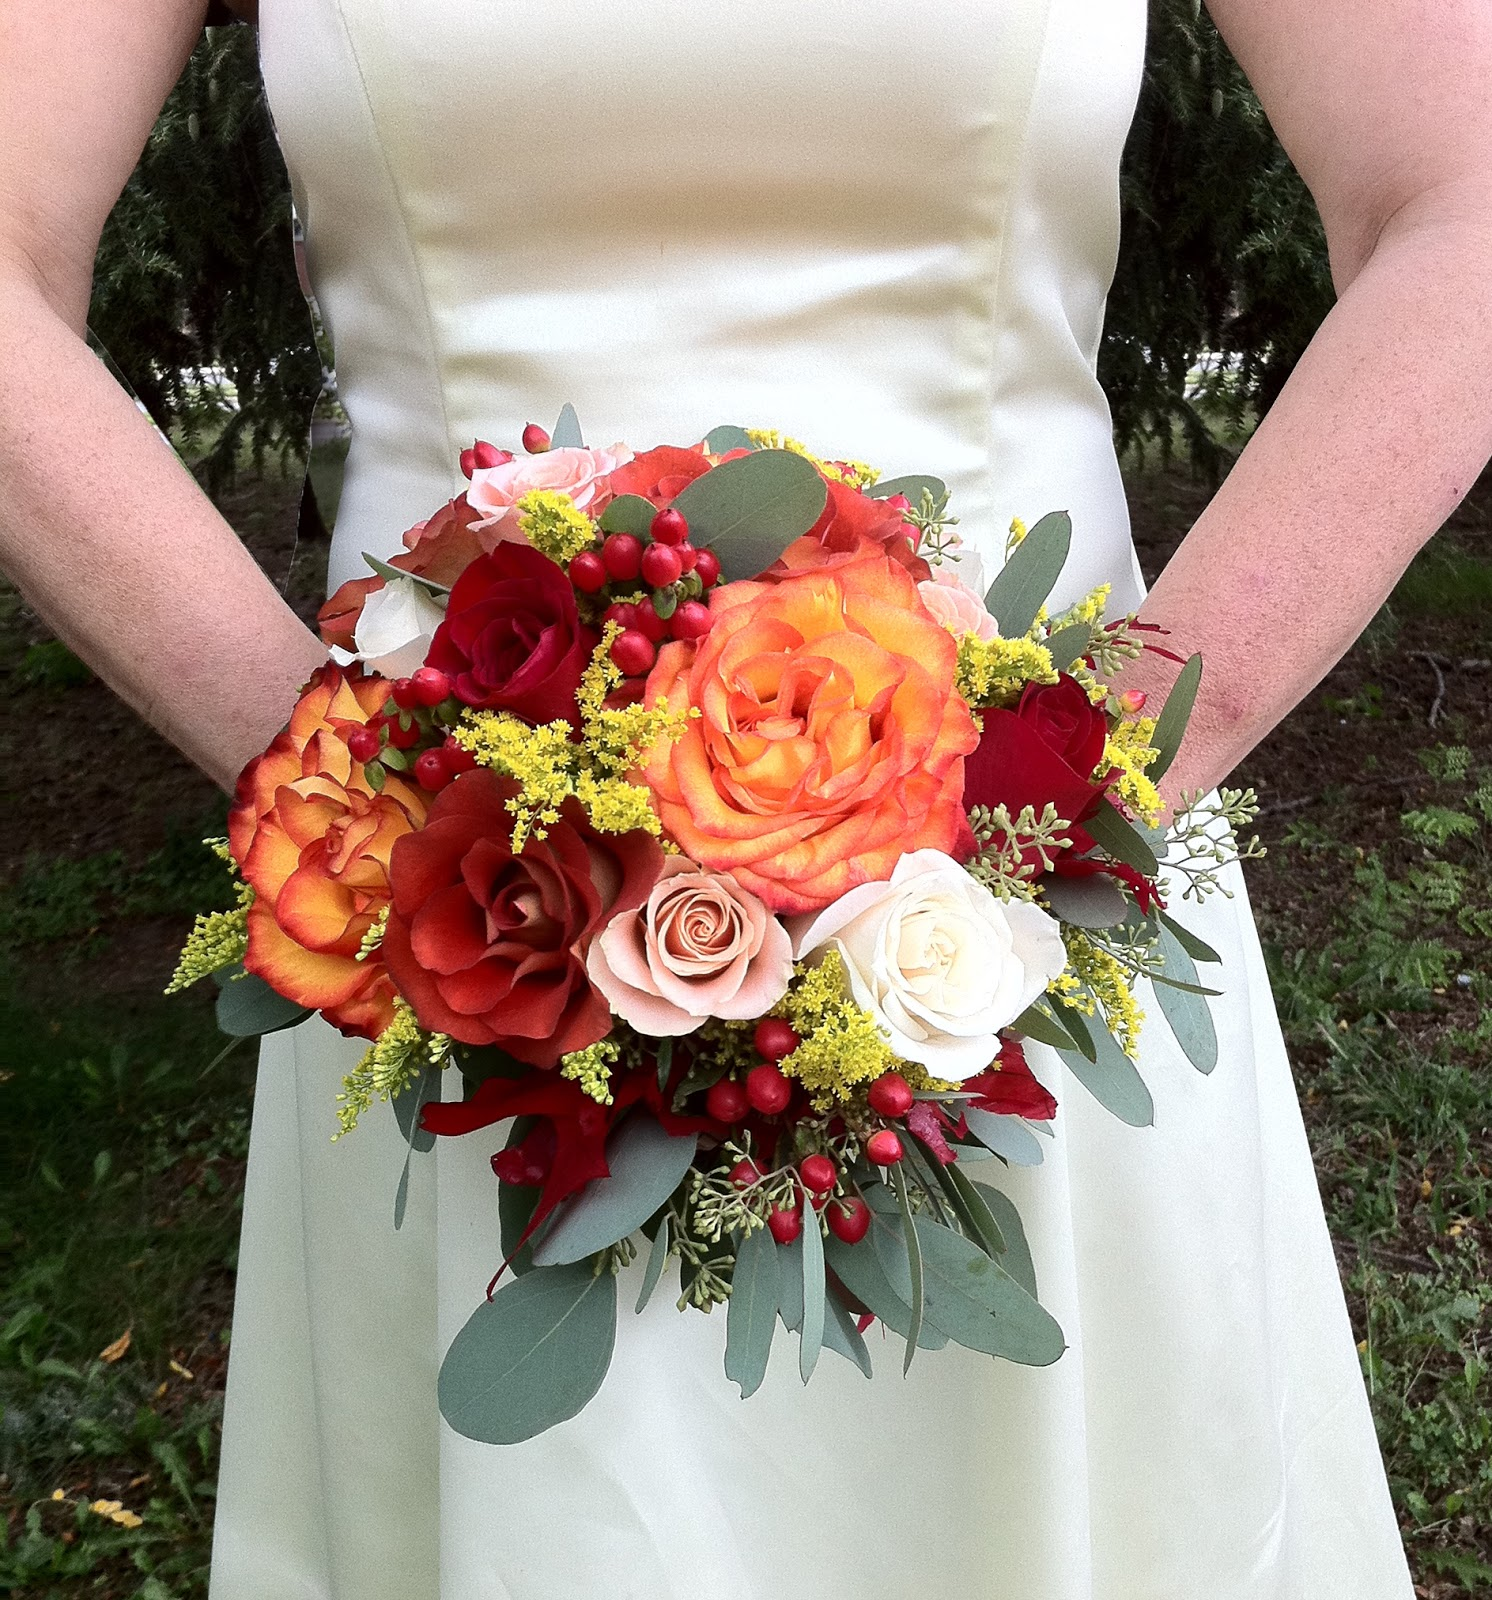 25 Autumn Inspired Wedding Flowers: The Enchanted Petal: Here Comes The Autumn Bride